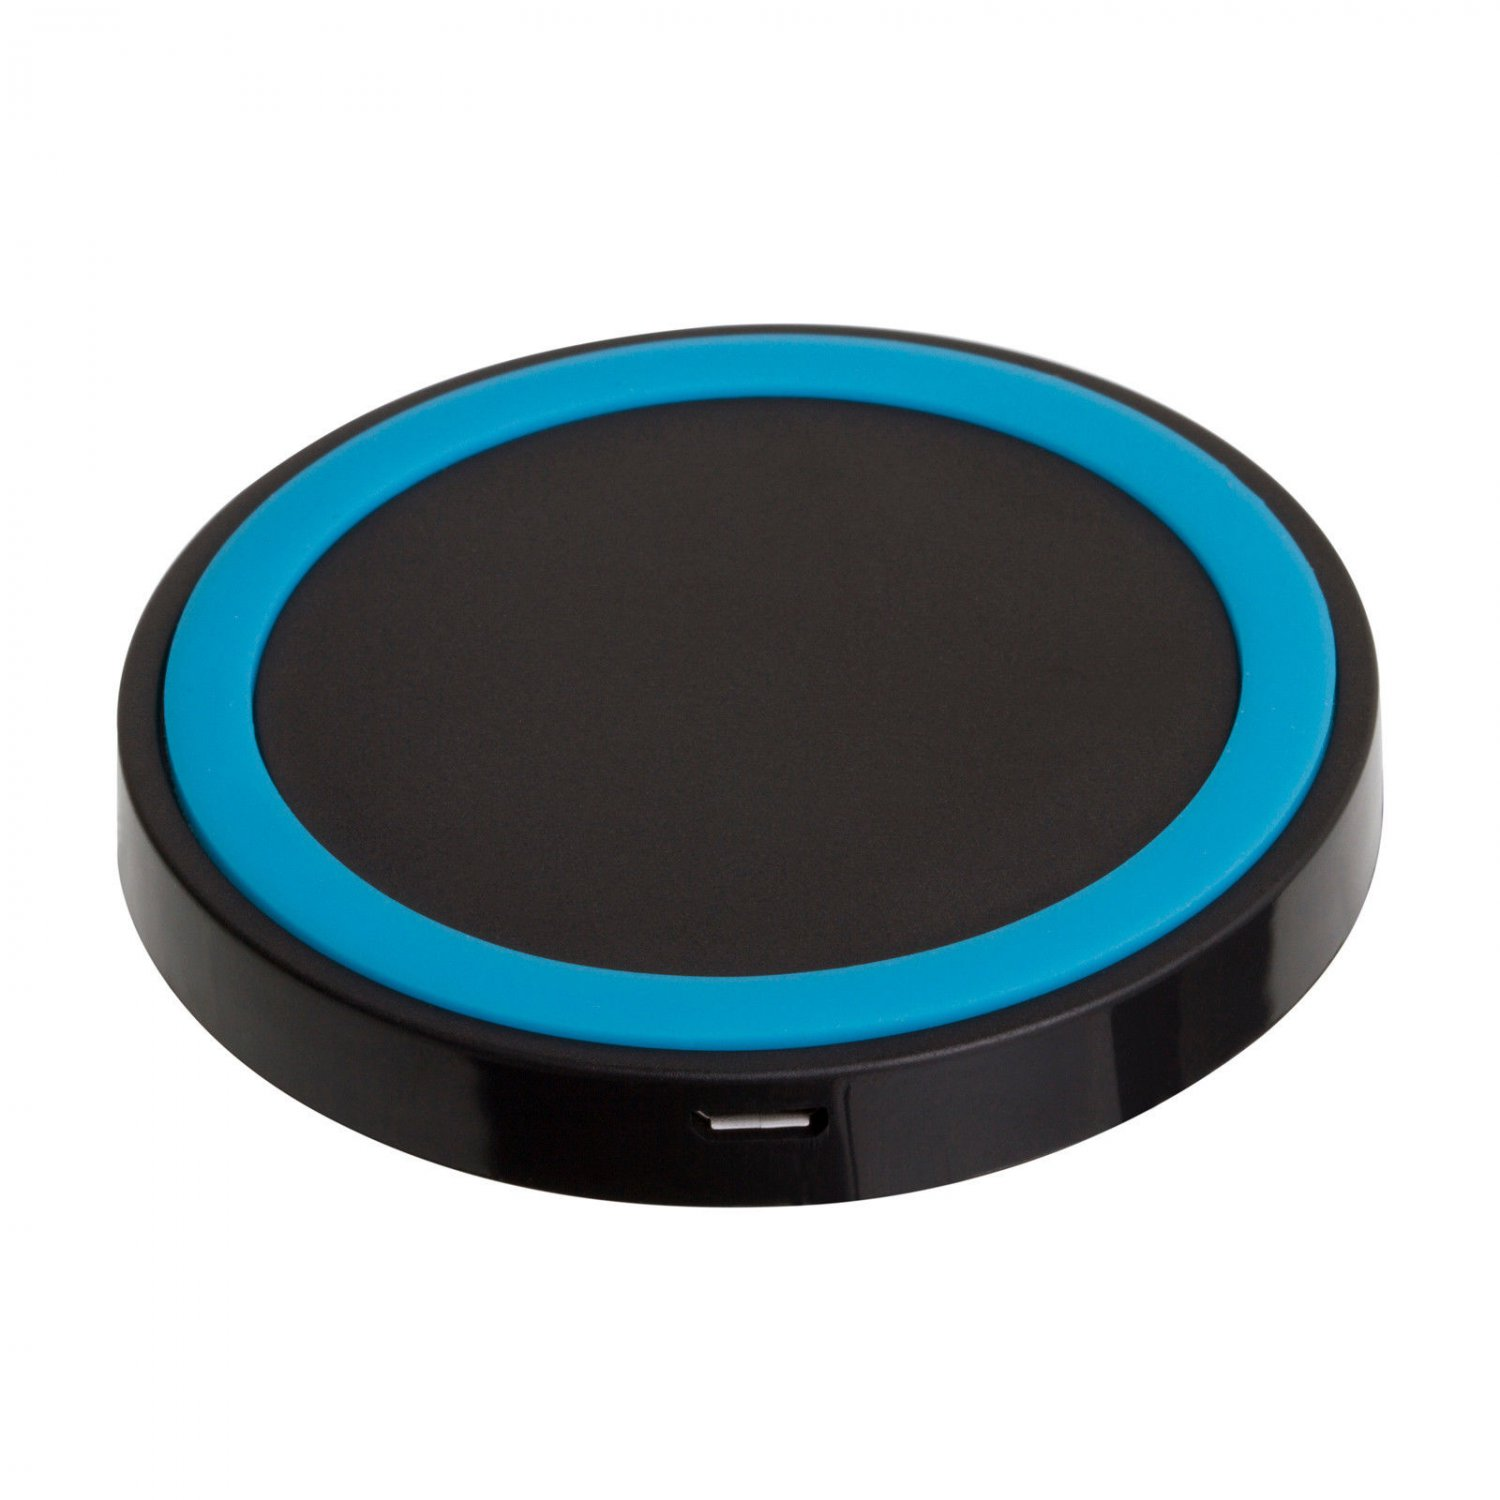 QI Wireless Charging Charger Pad In Blue For iPhone Samsung Galaxy S5 LG Nexus Nokia